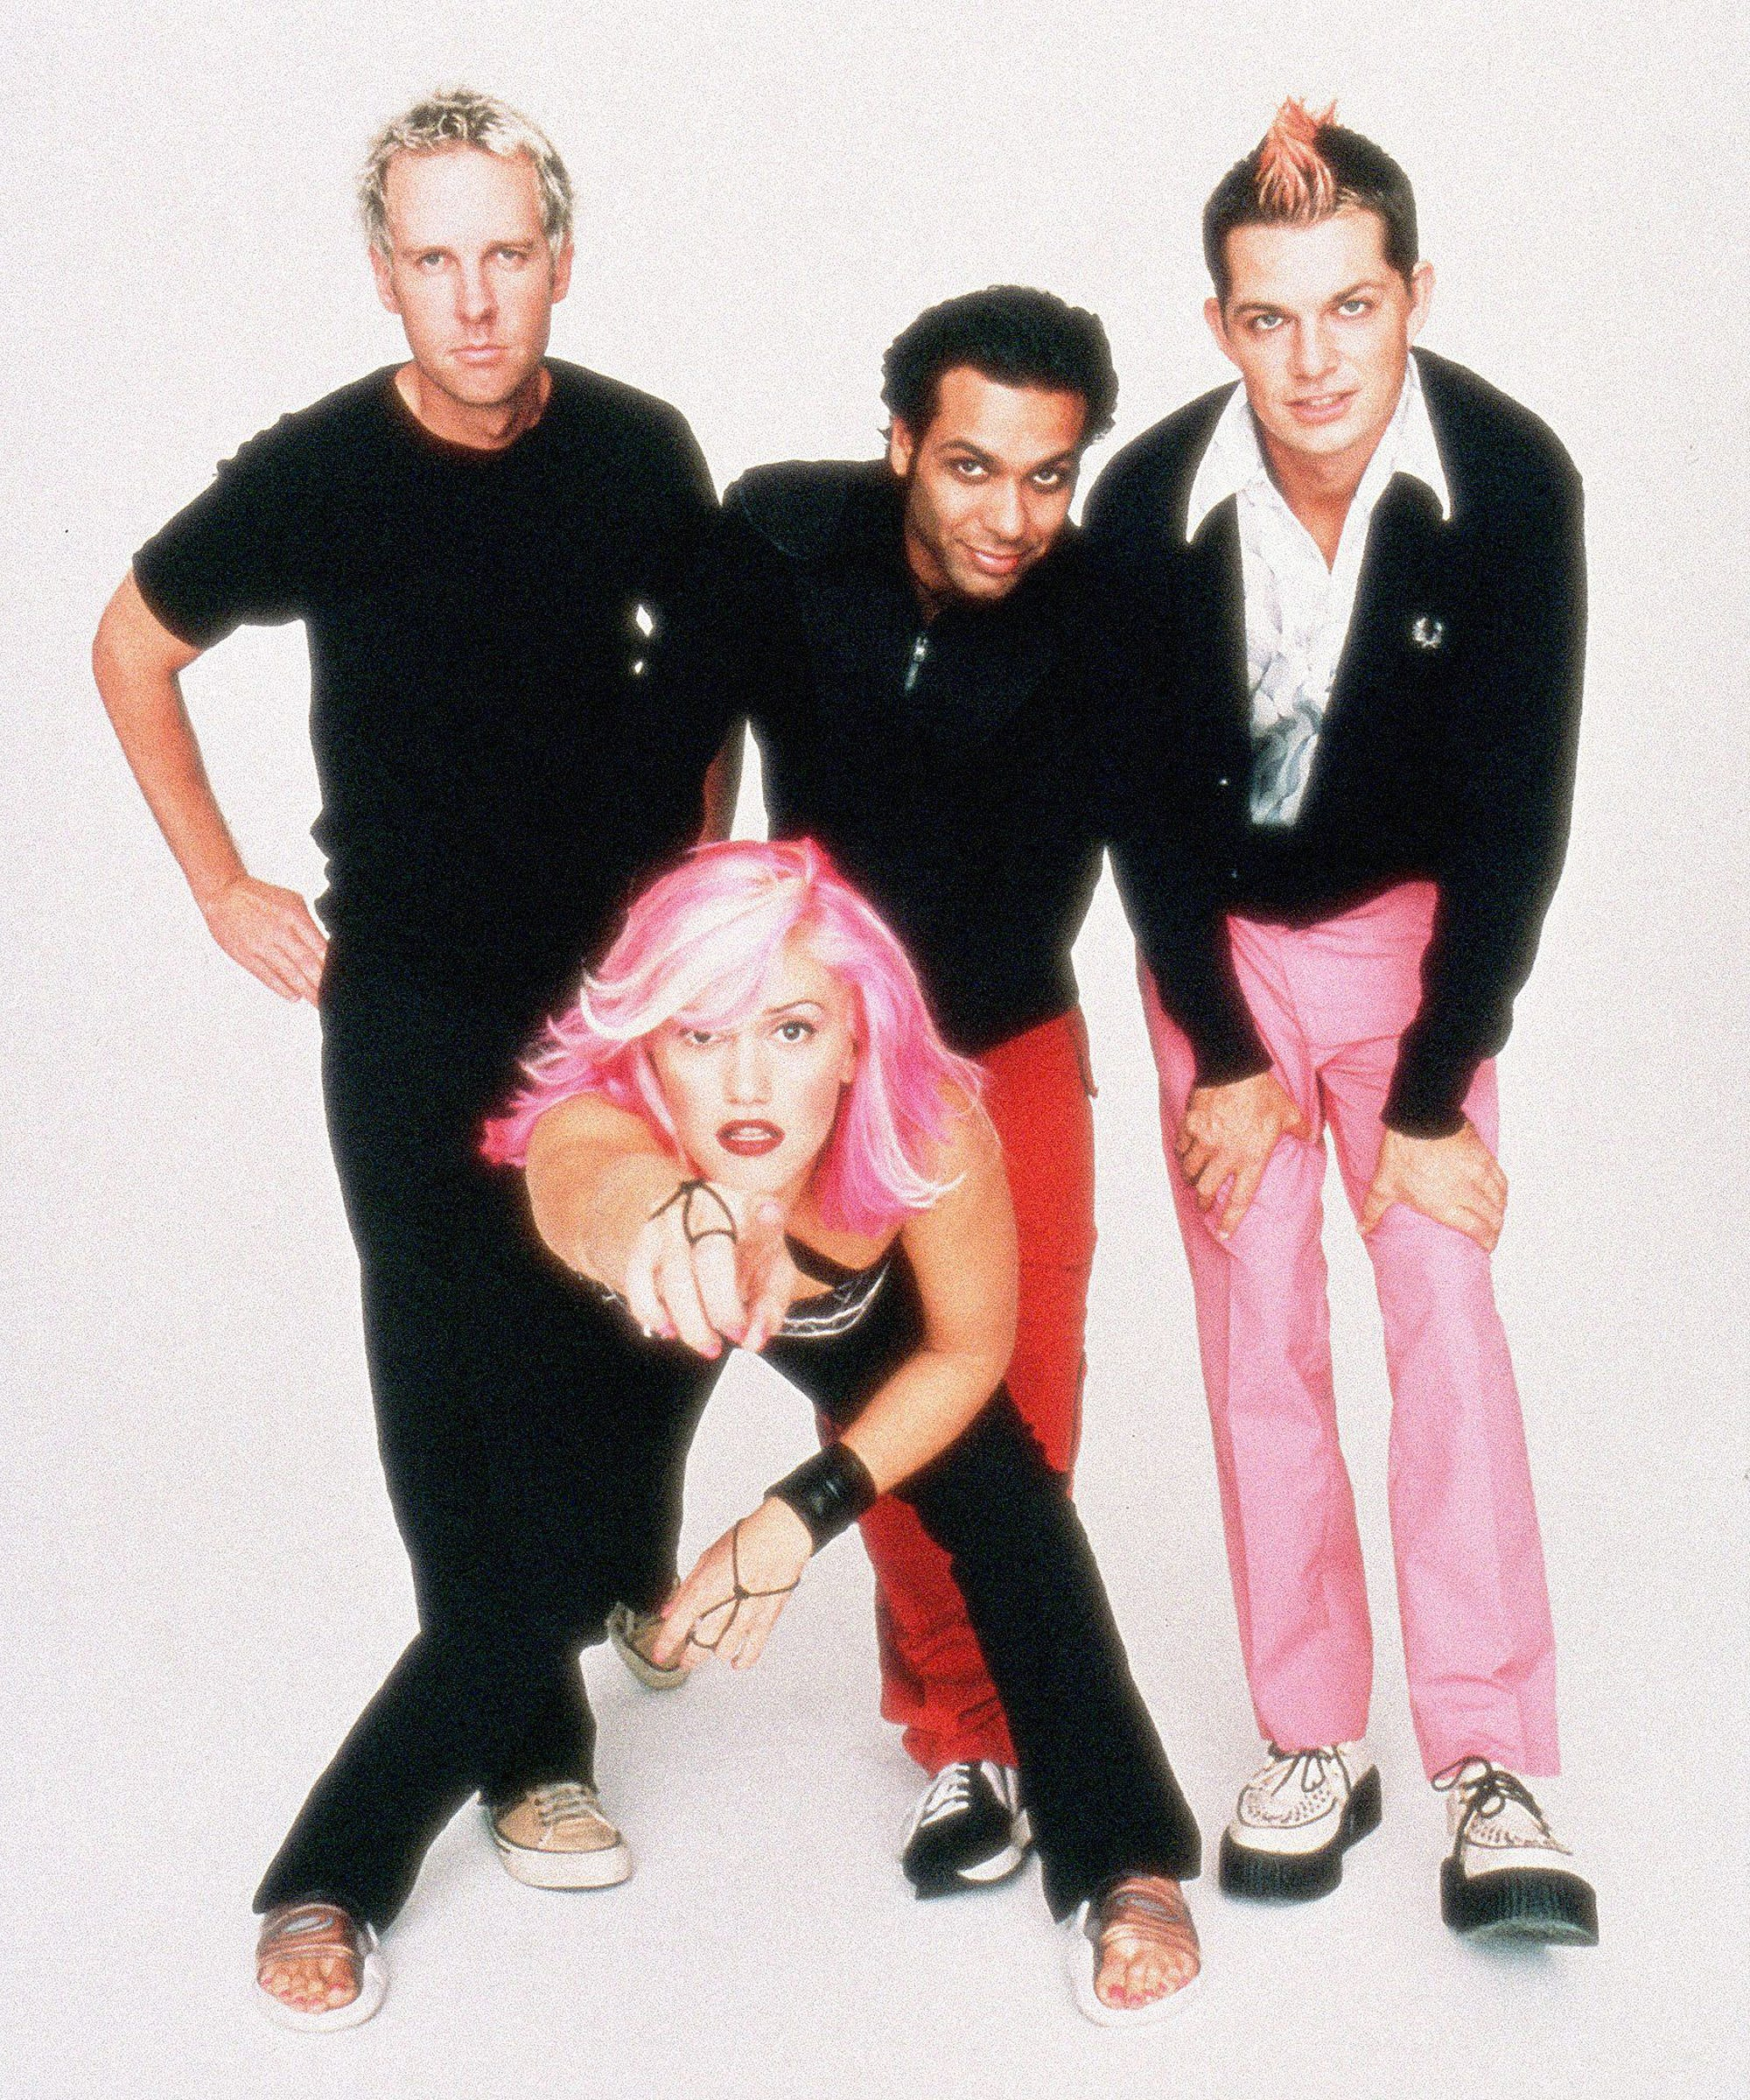 No Doubt New Band Without Gwen Stefani